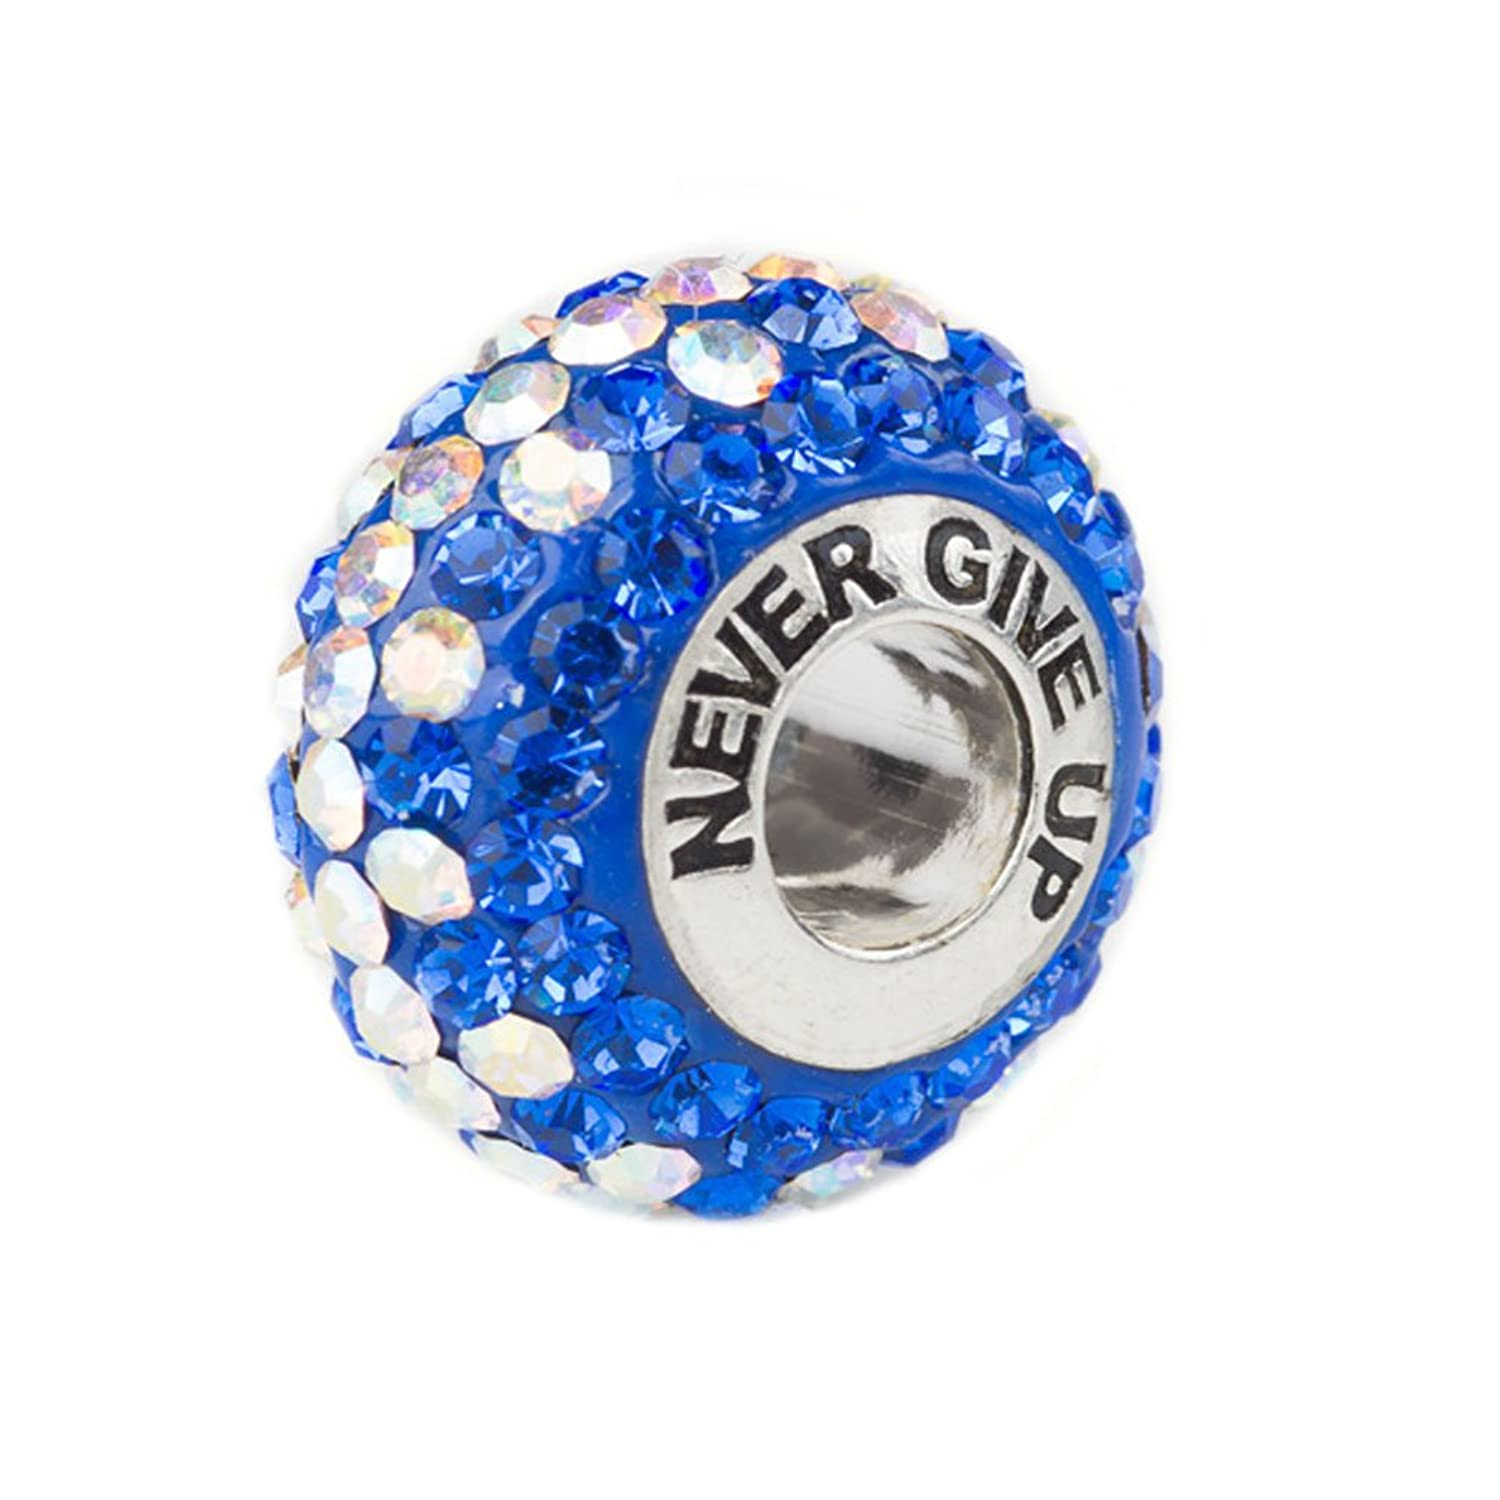 Never Give Up! Bead